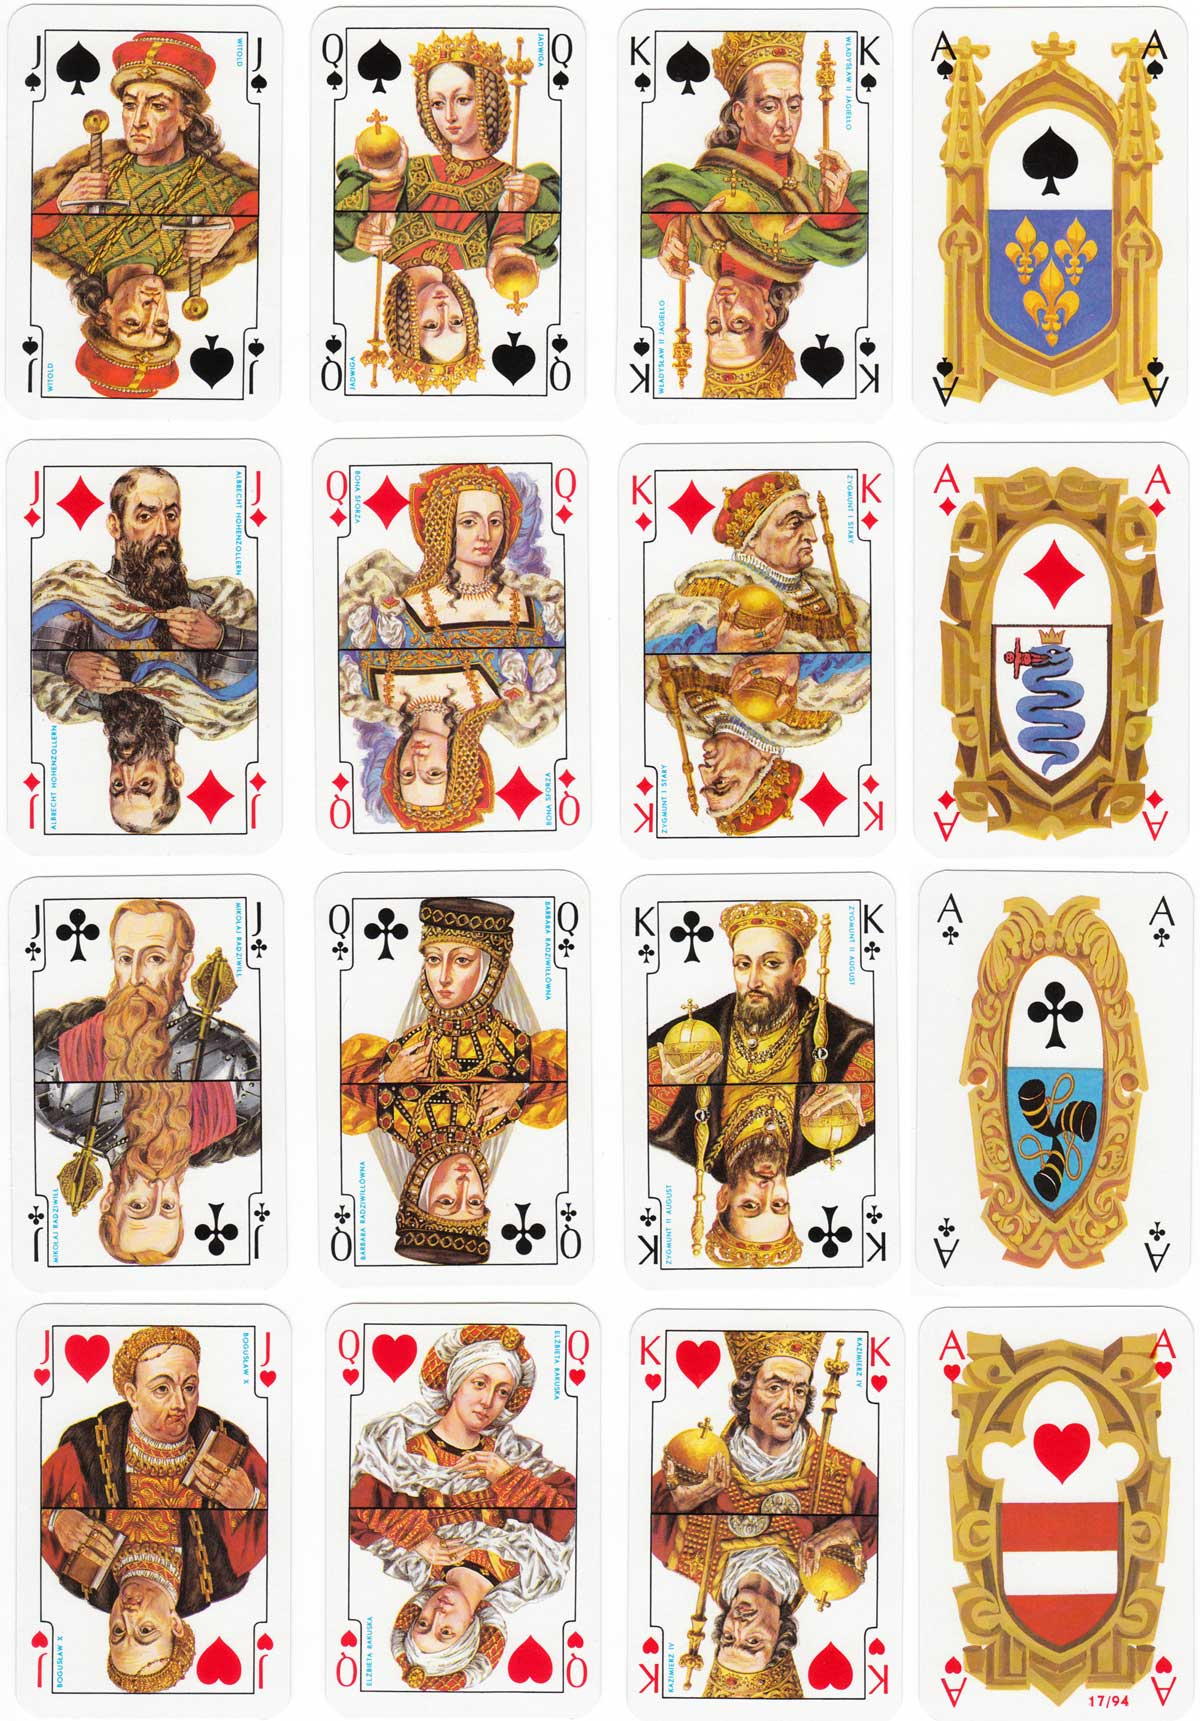 Jagiellonskie playing cards based on the historical paintings of Jan Matejko